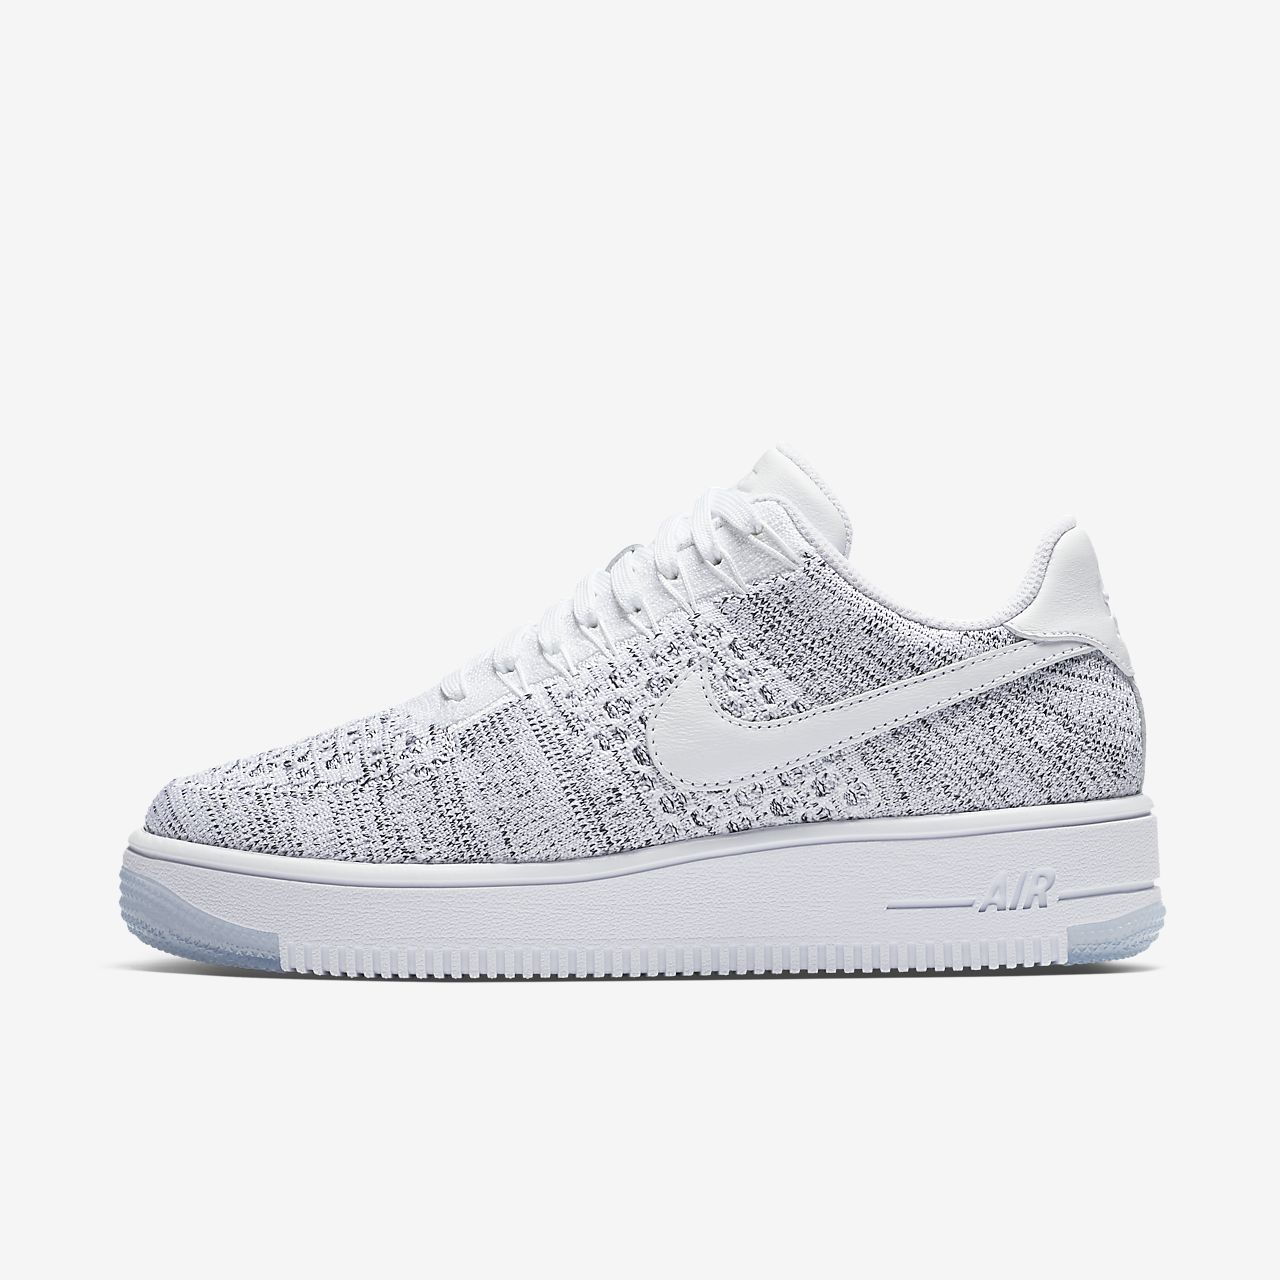 air force 1 upstep si nz